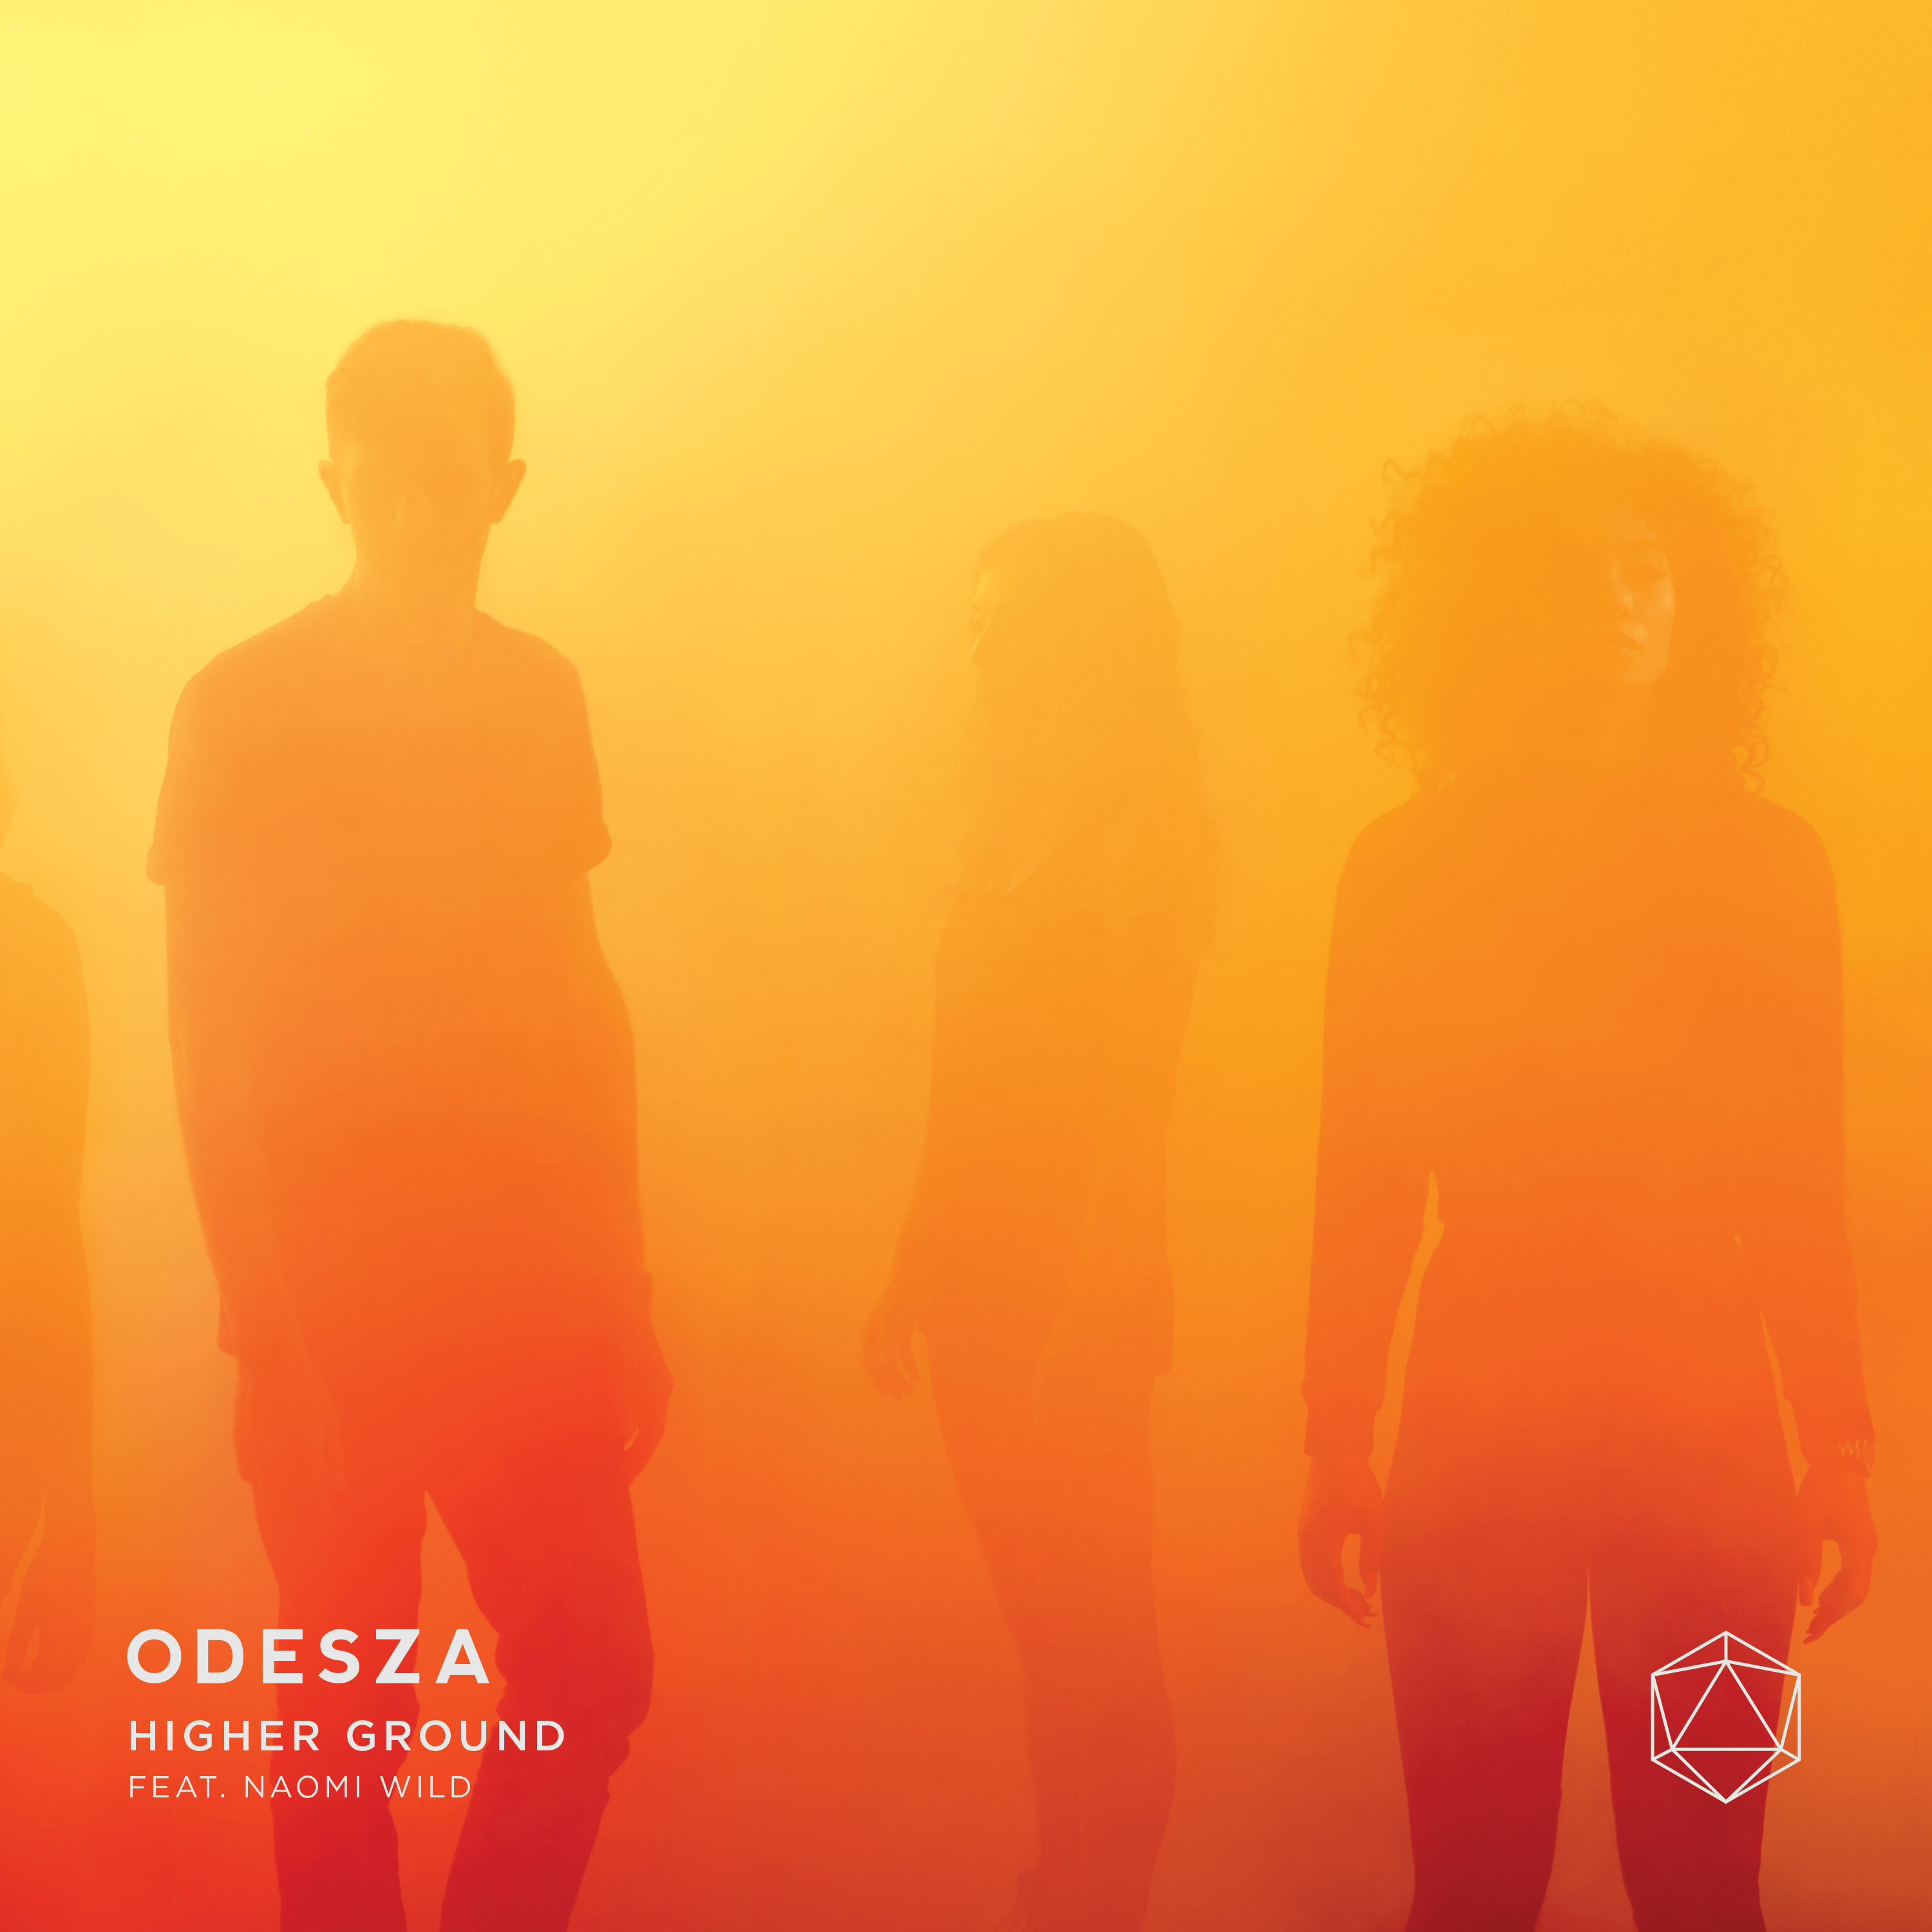 unnamed 11 ODESZA share new single Higher Ground featuring Naomi Wild: Stream